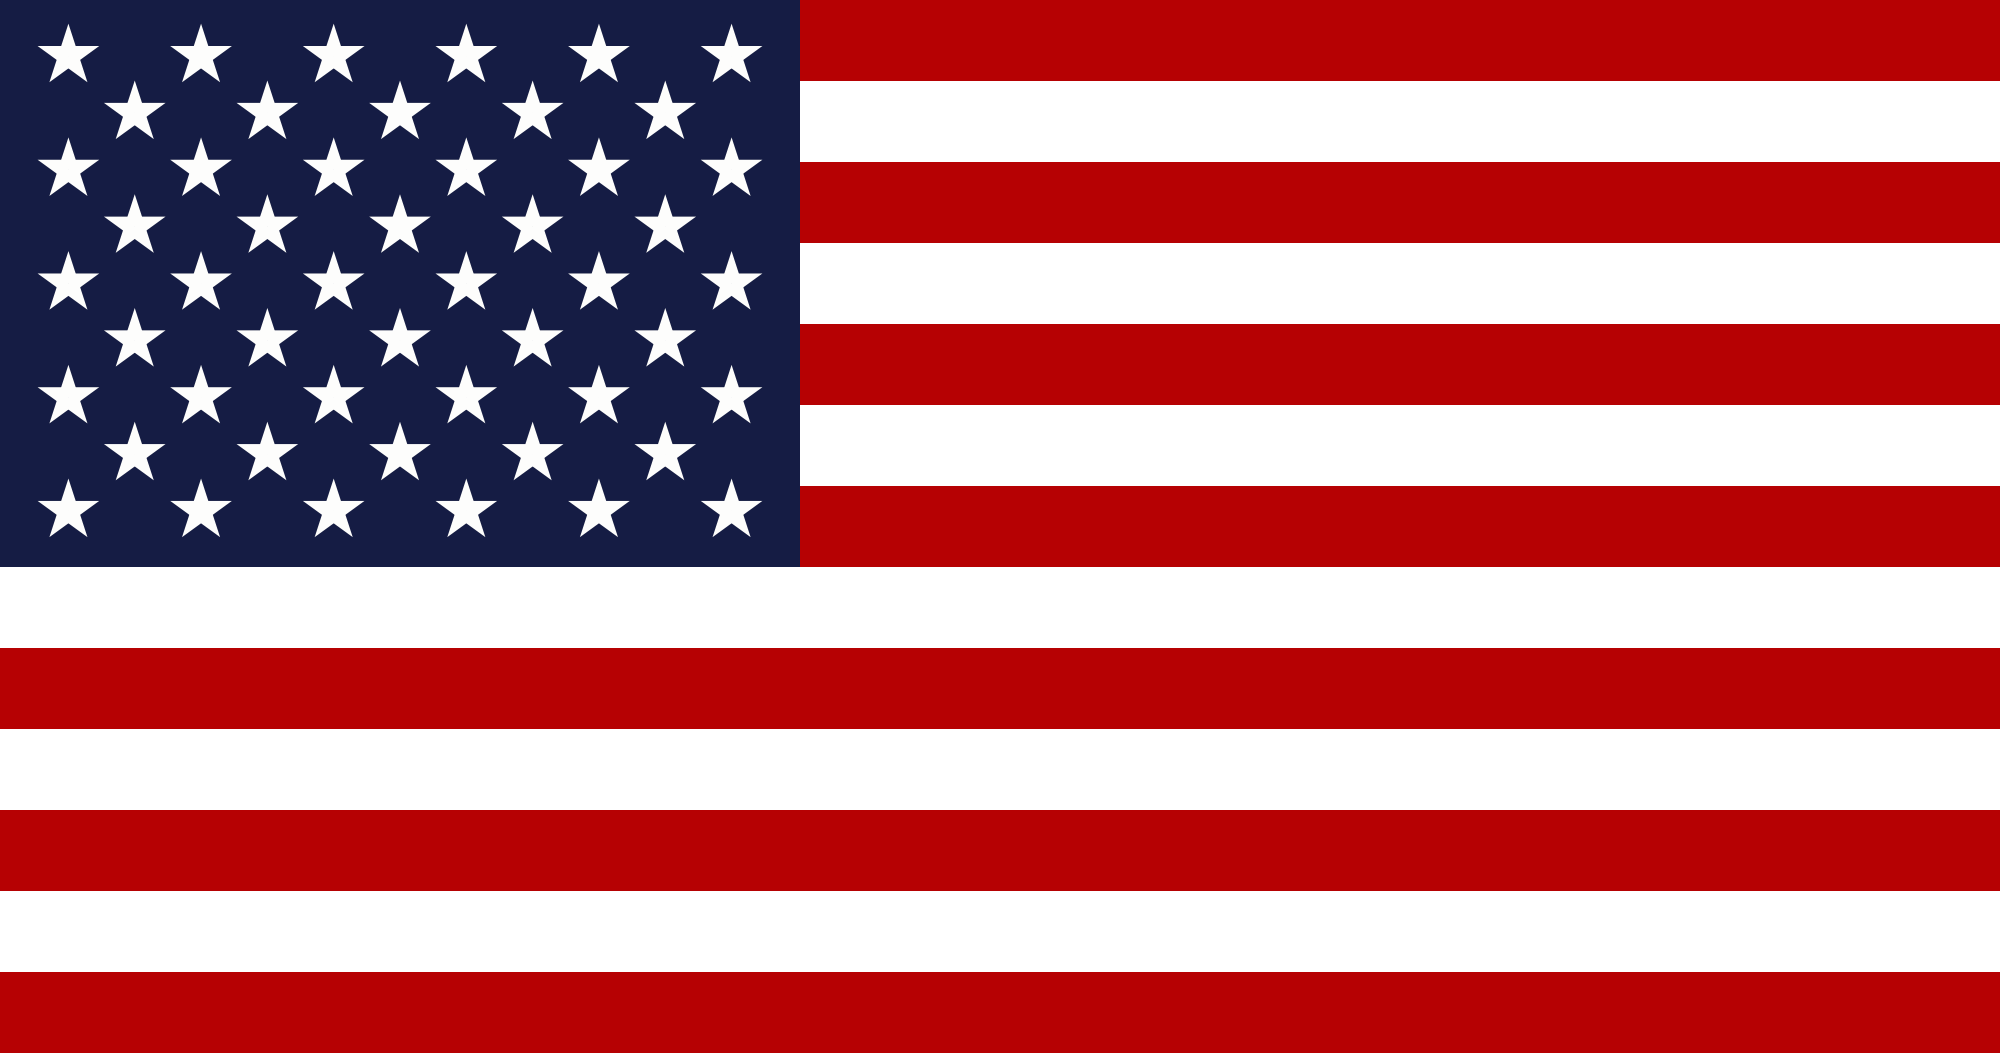 The United States Flag Store has a vast selection of flags for virtually any cause or occasion, but we understand that sometimes only a custom flag will do.